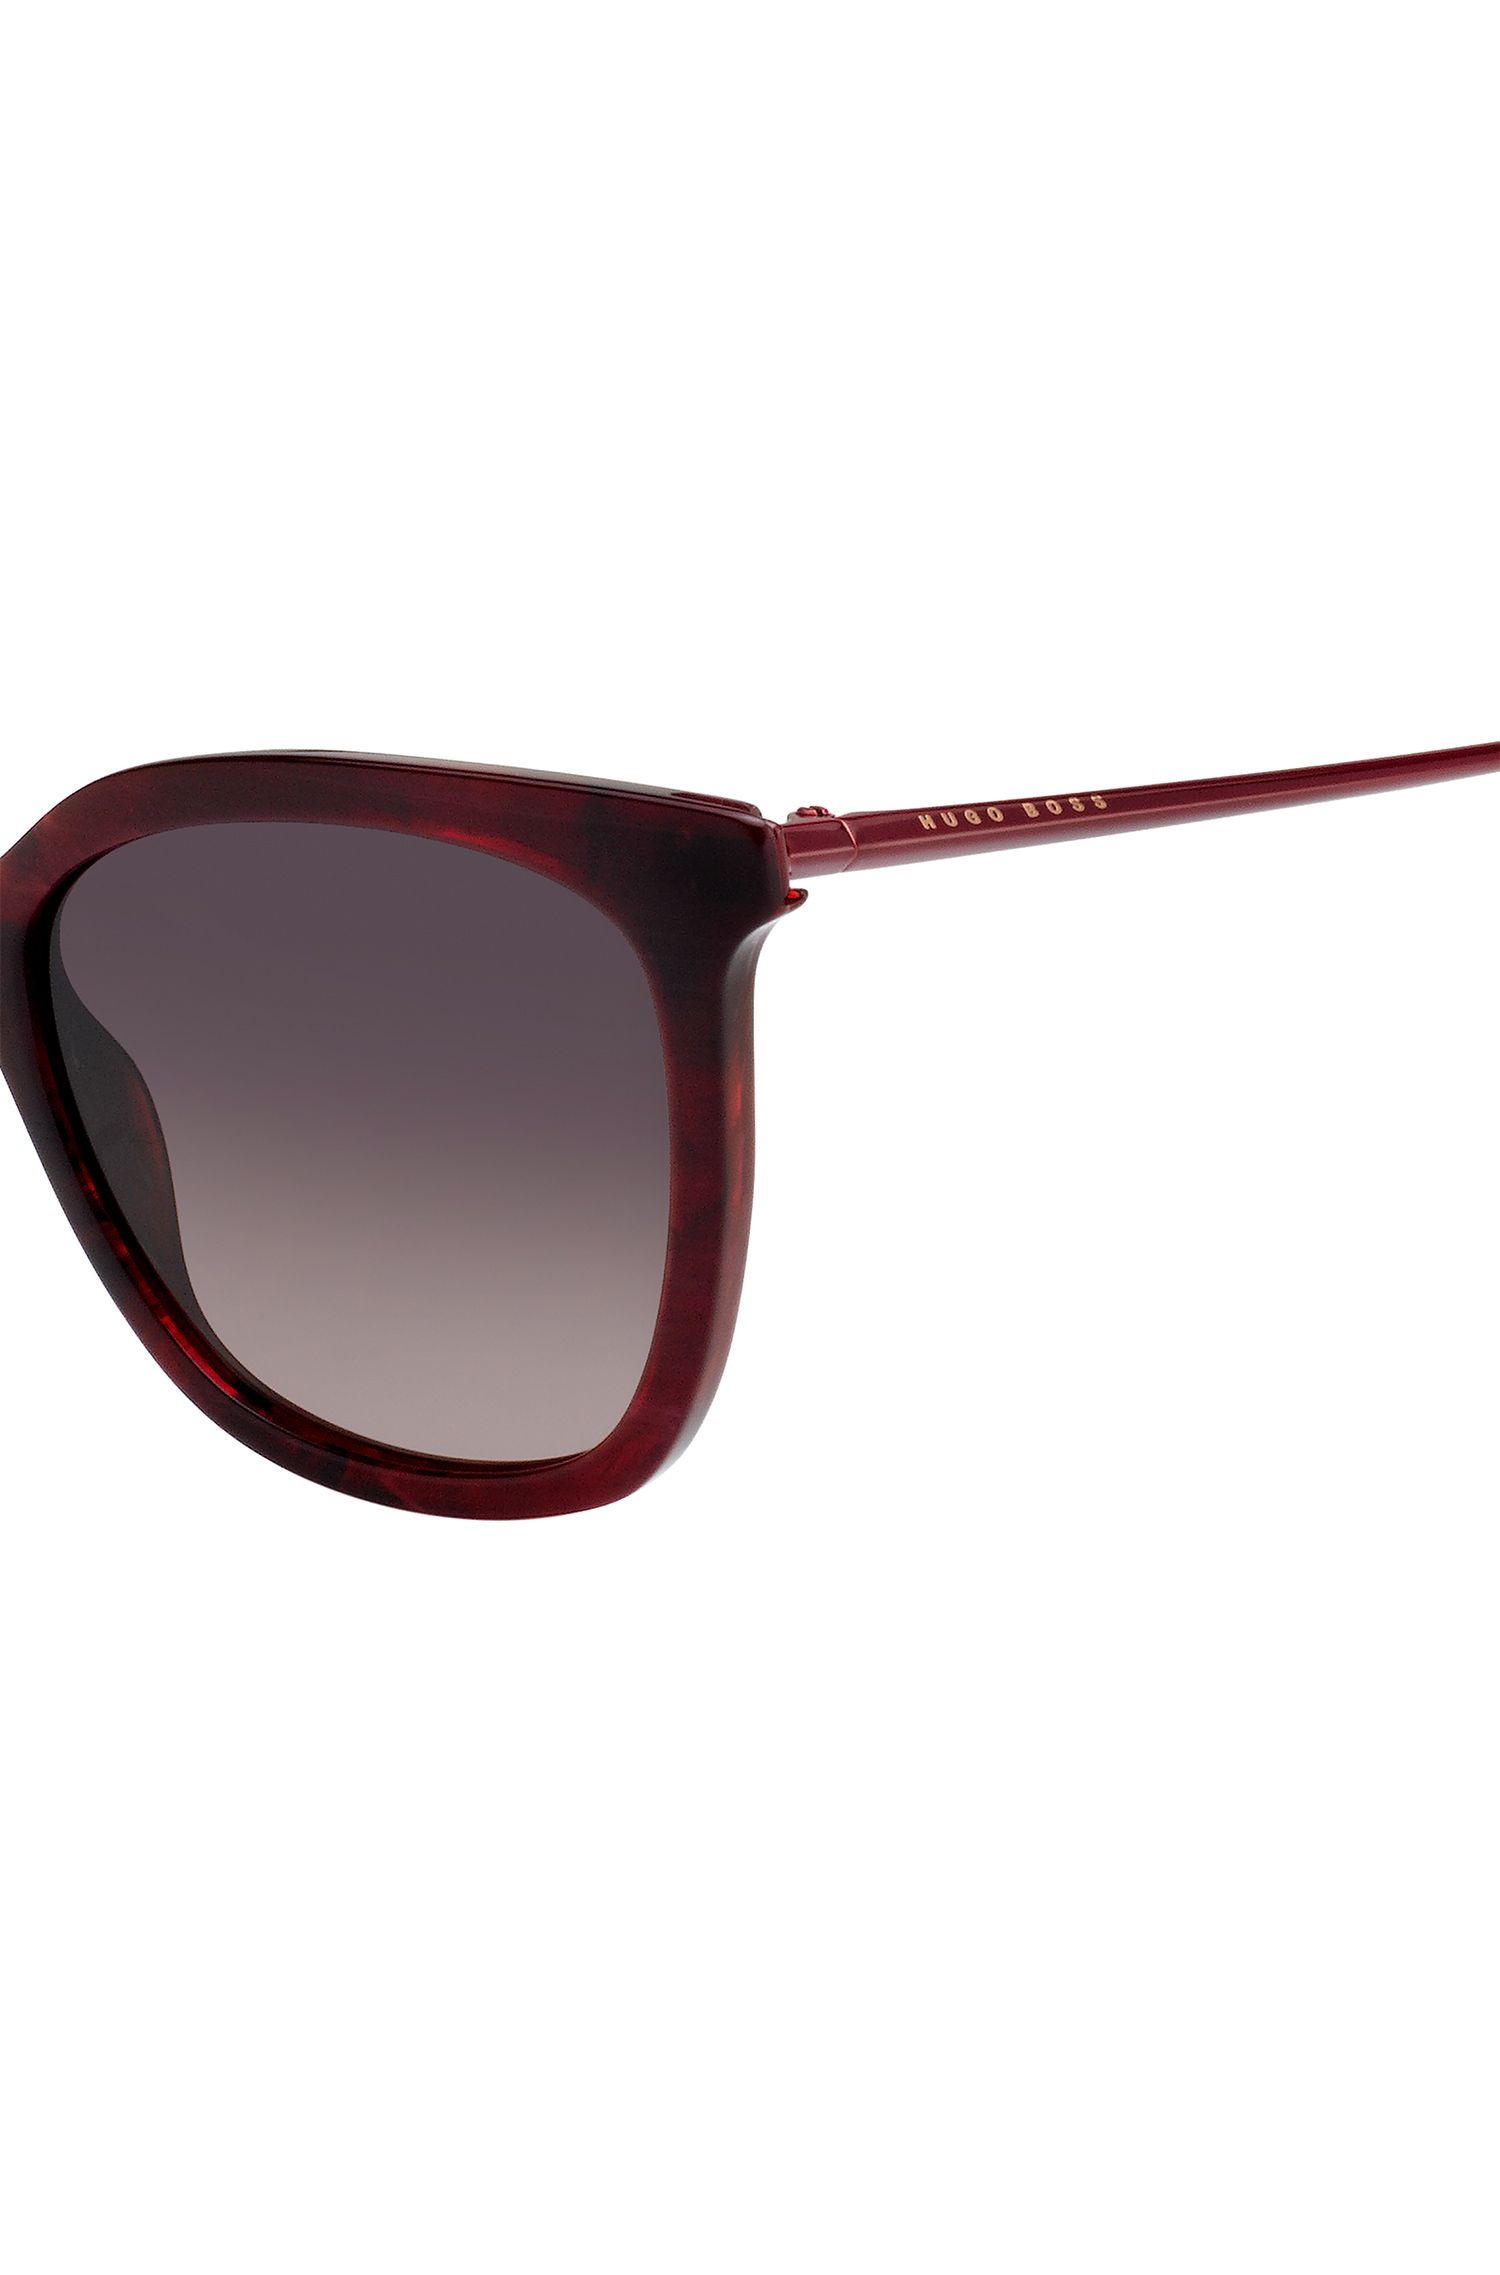 Acetate sunglasses with butterfly temples